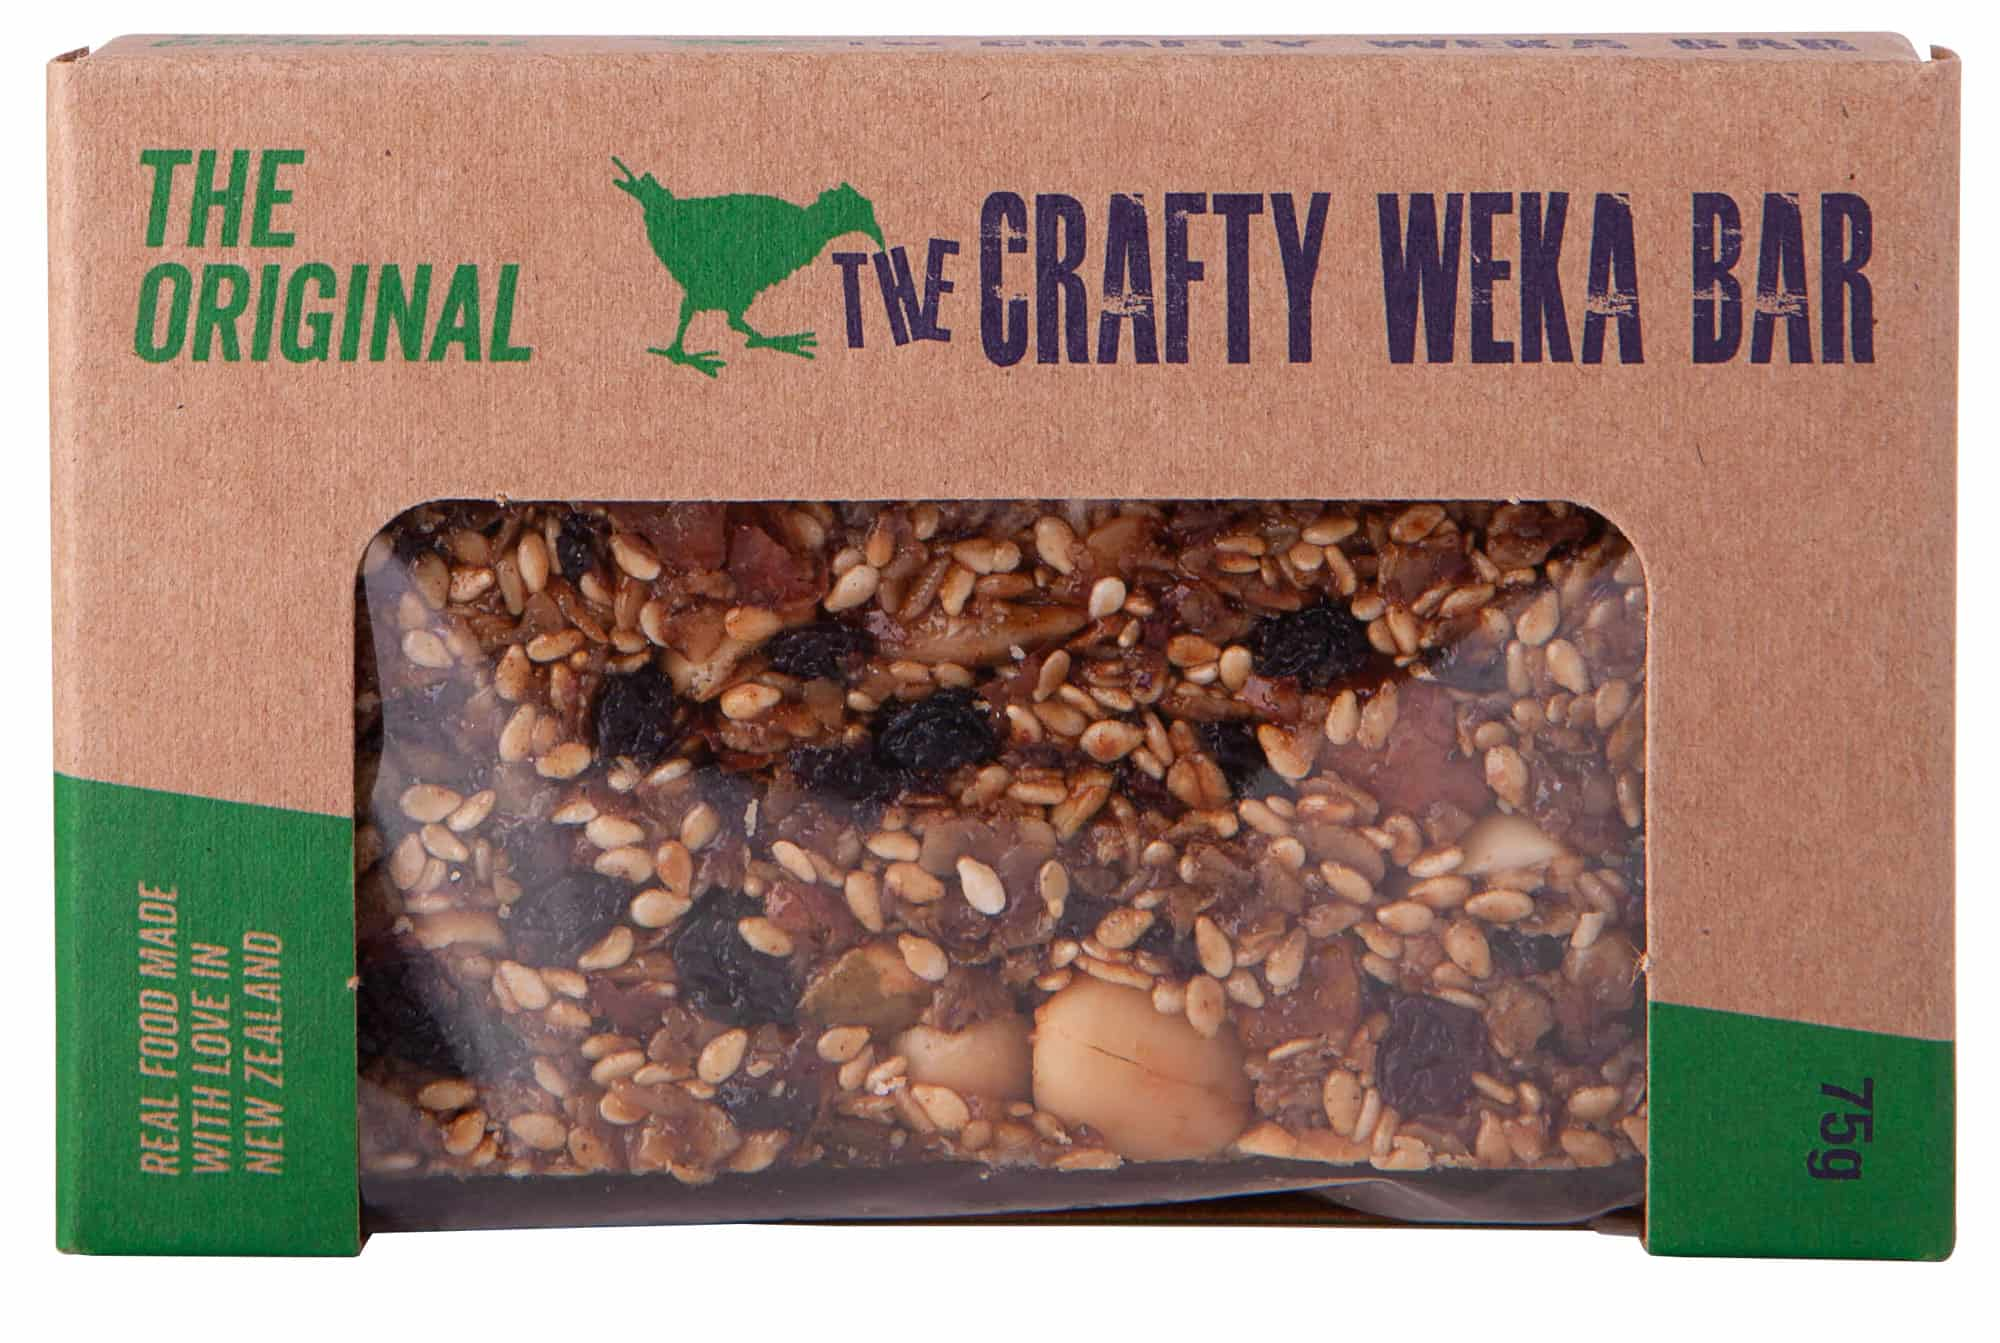 photo: The Crafty Weka Bar The Original nutrition bar